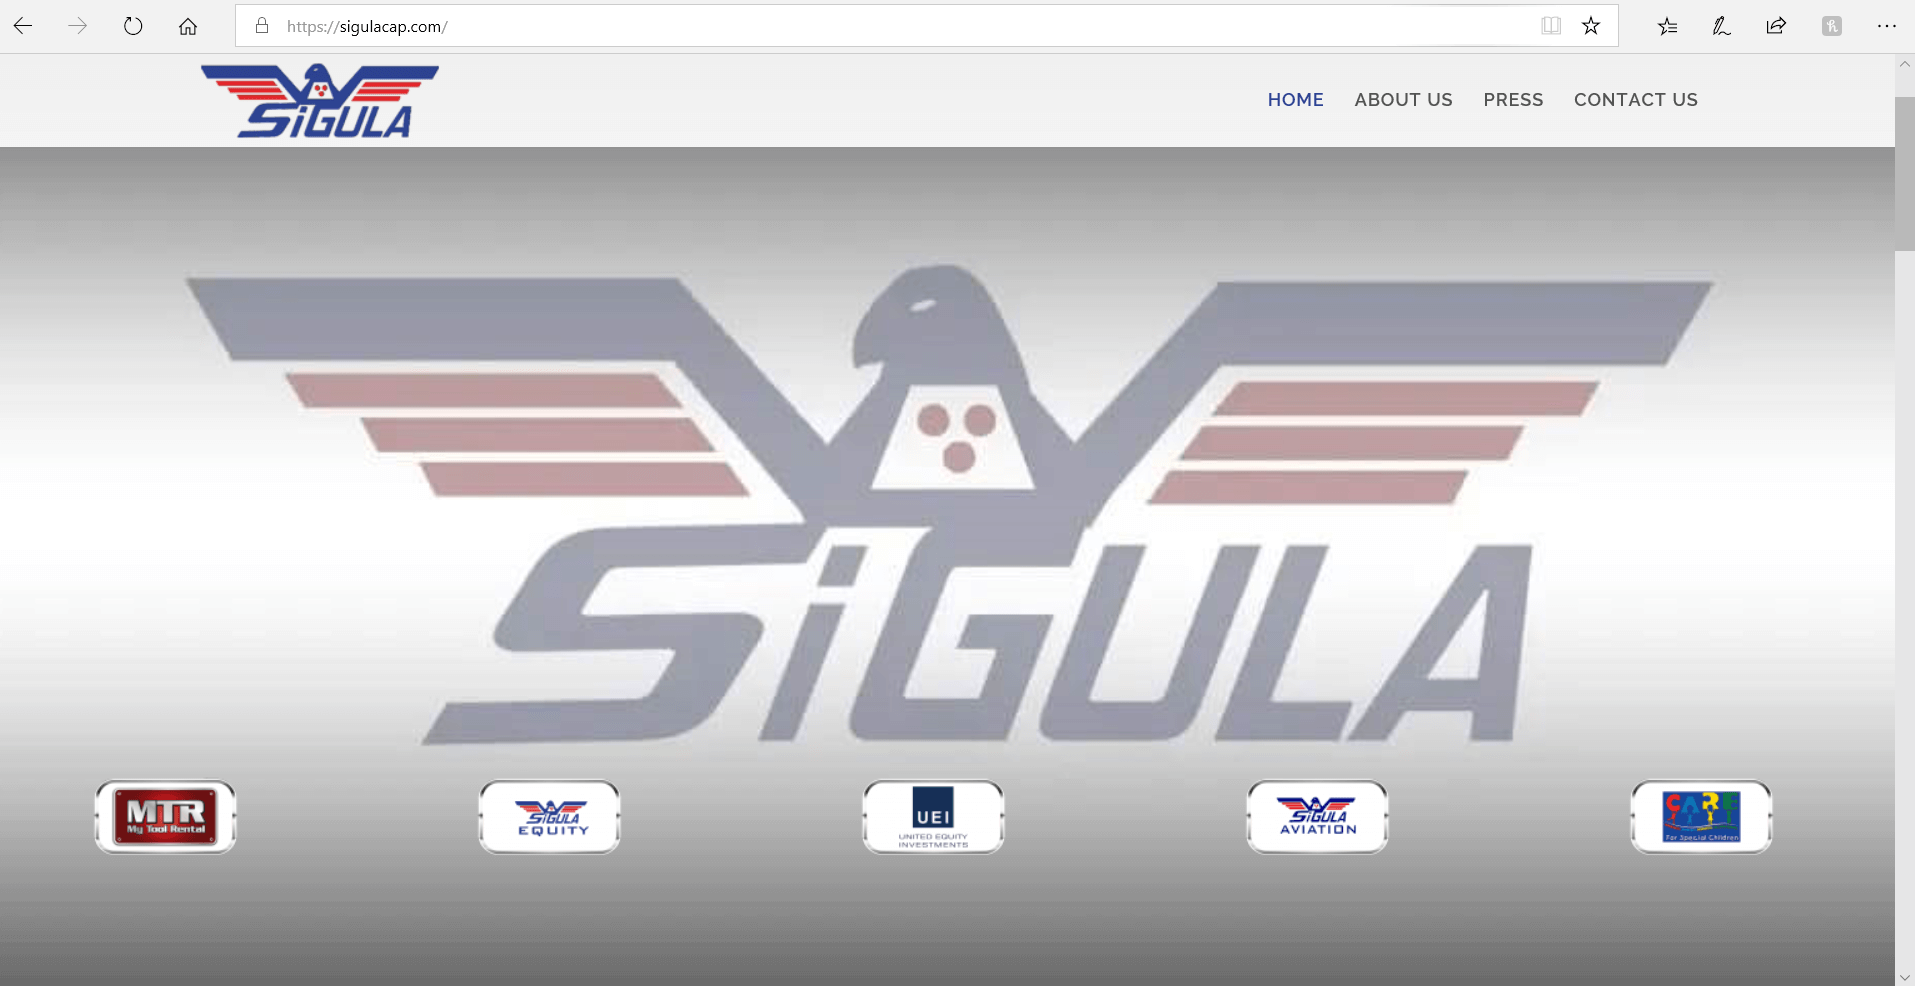 https://sigulacap.com/